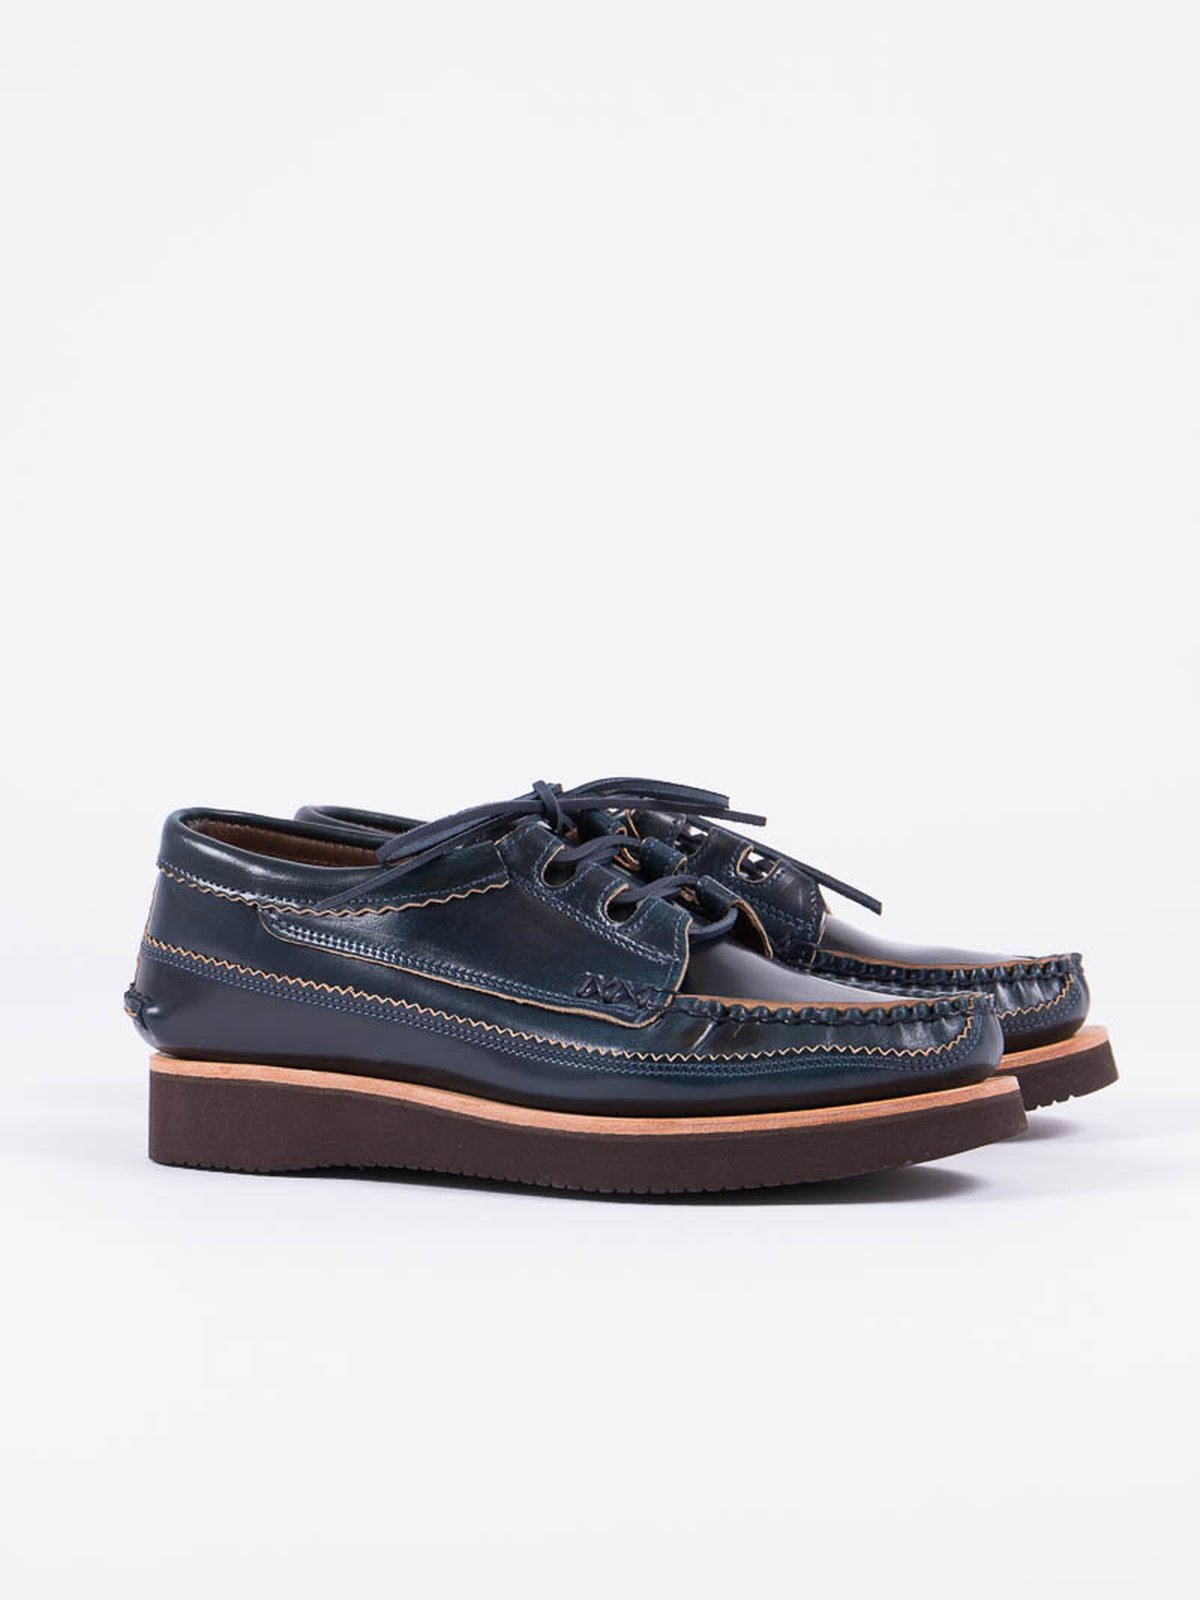 Navy Cordovan Ghillie Moc DB Shoe Exclusive - Image 1